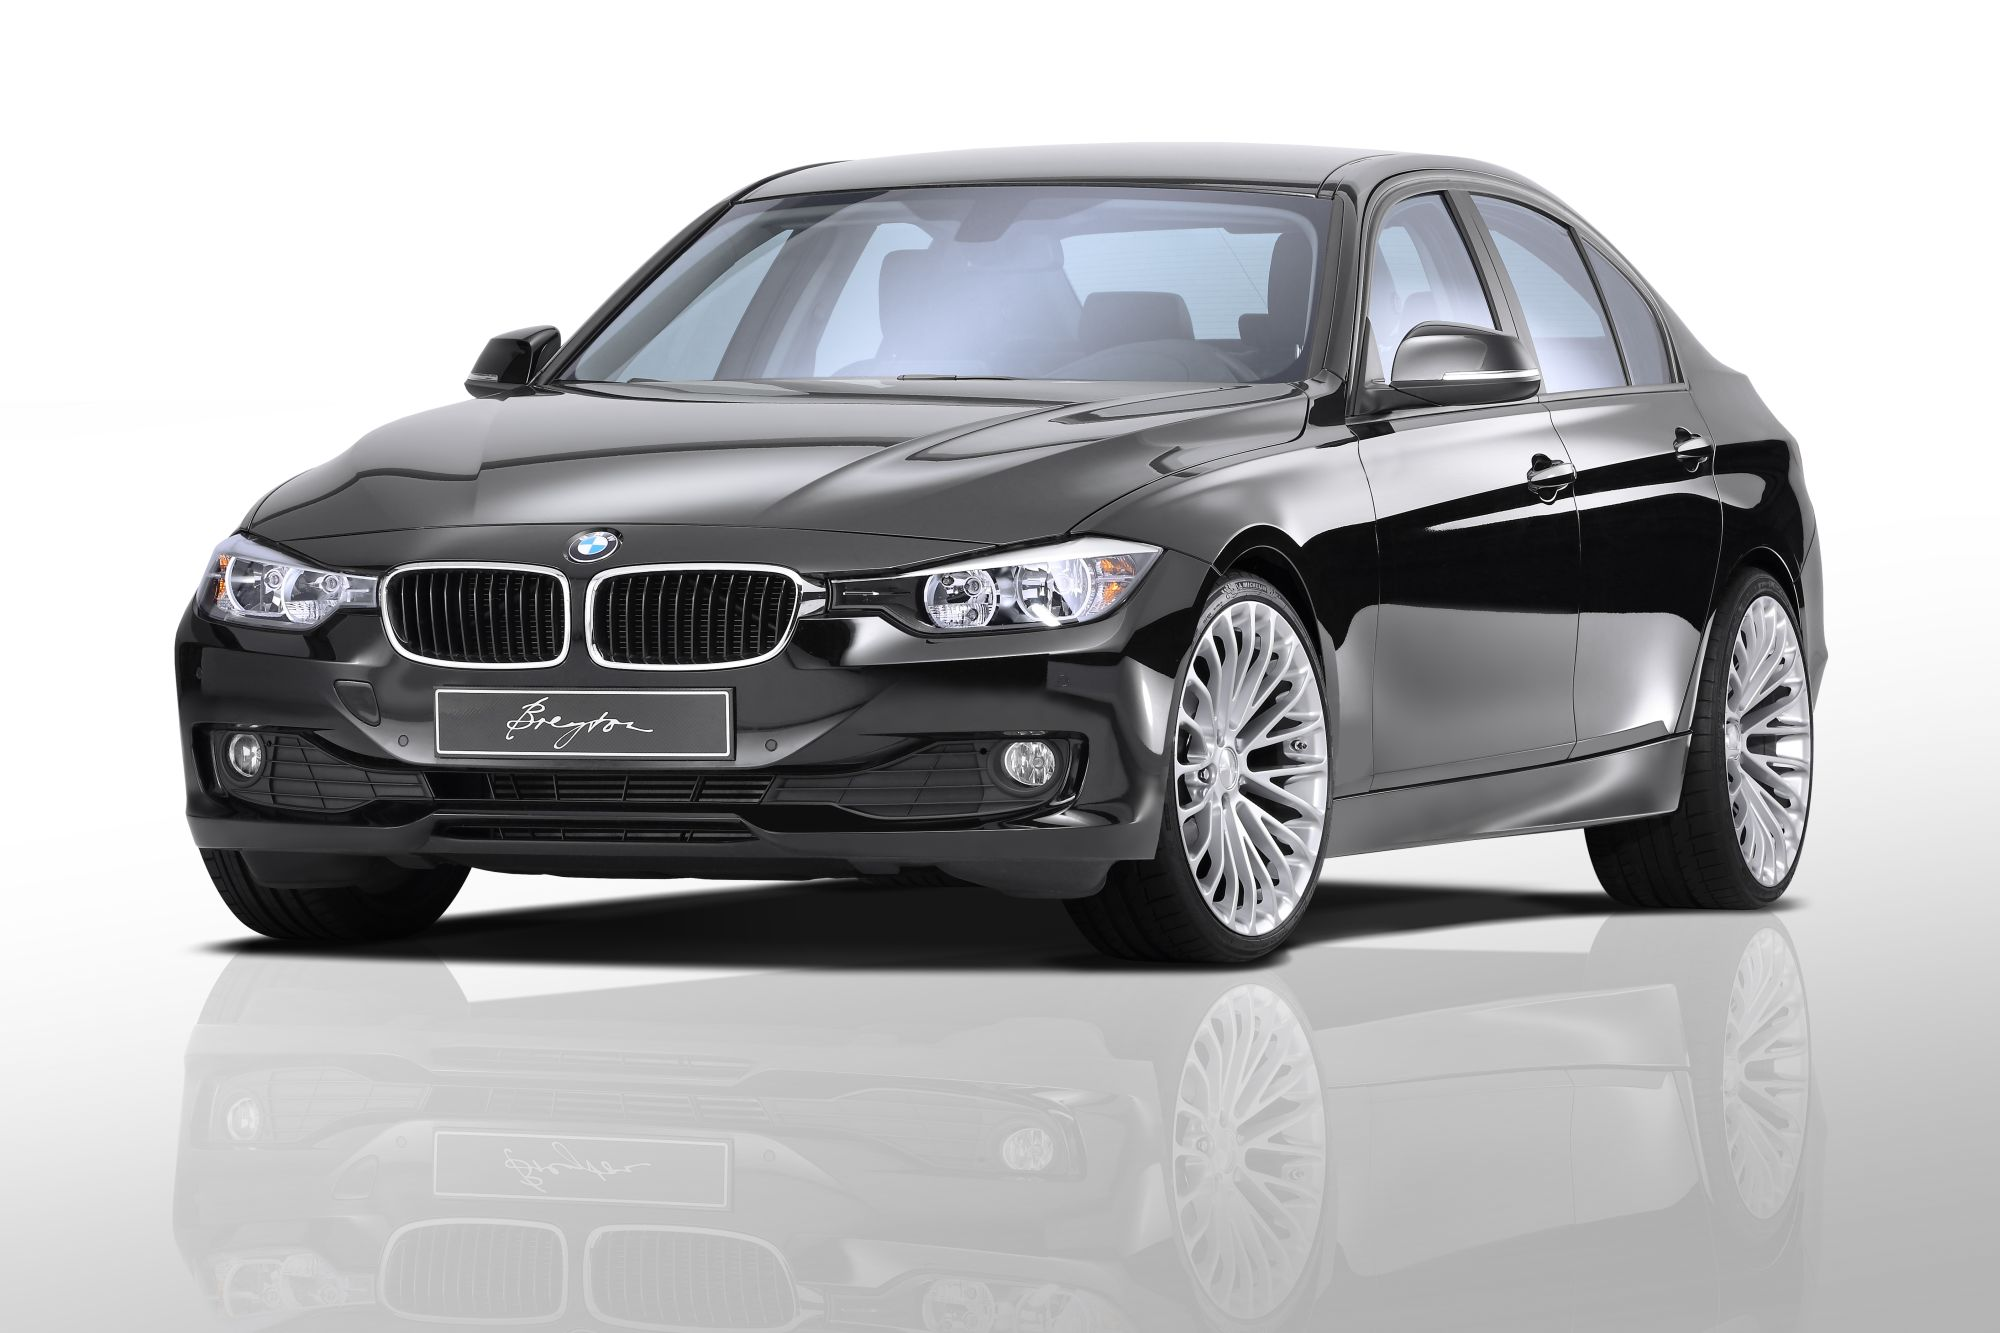 breyton race ls hyper silver 19 zoll bmw 5er f10 limousine. Black Bedroom Furniture Sets. Home Design Ideas